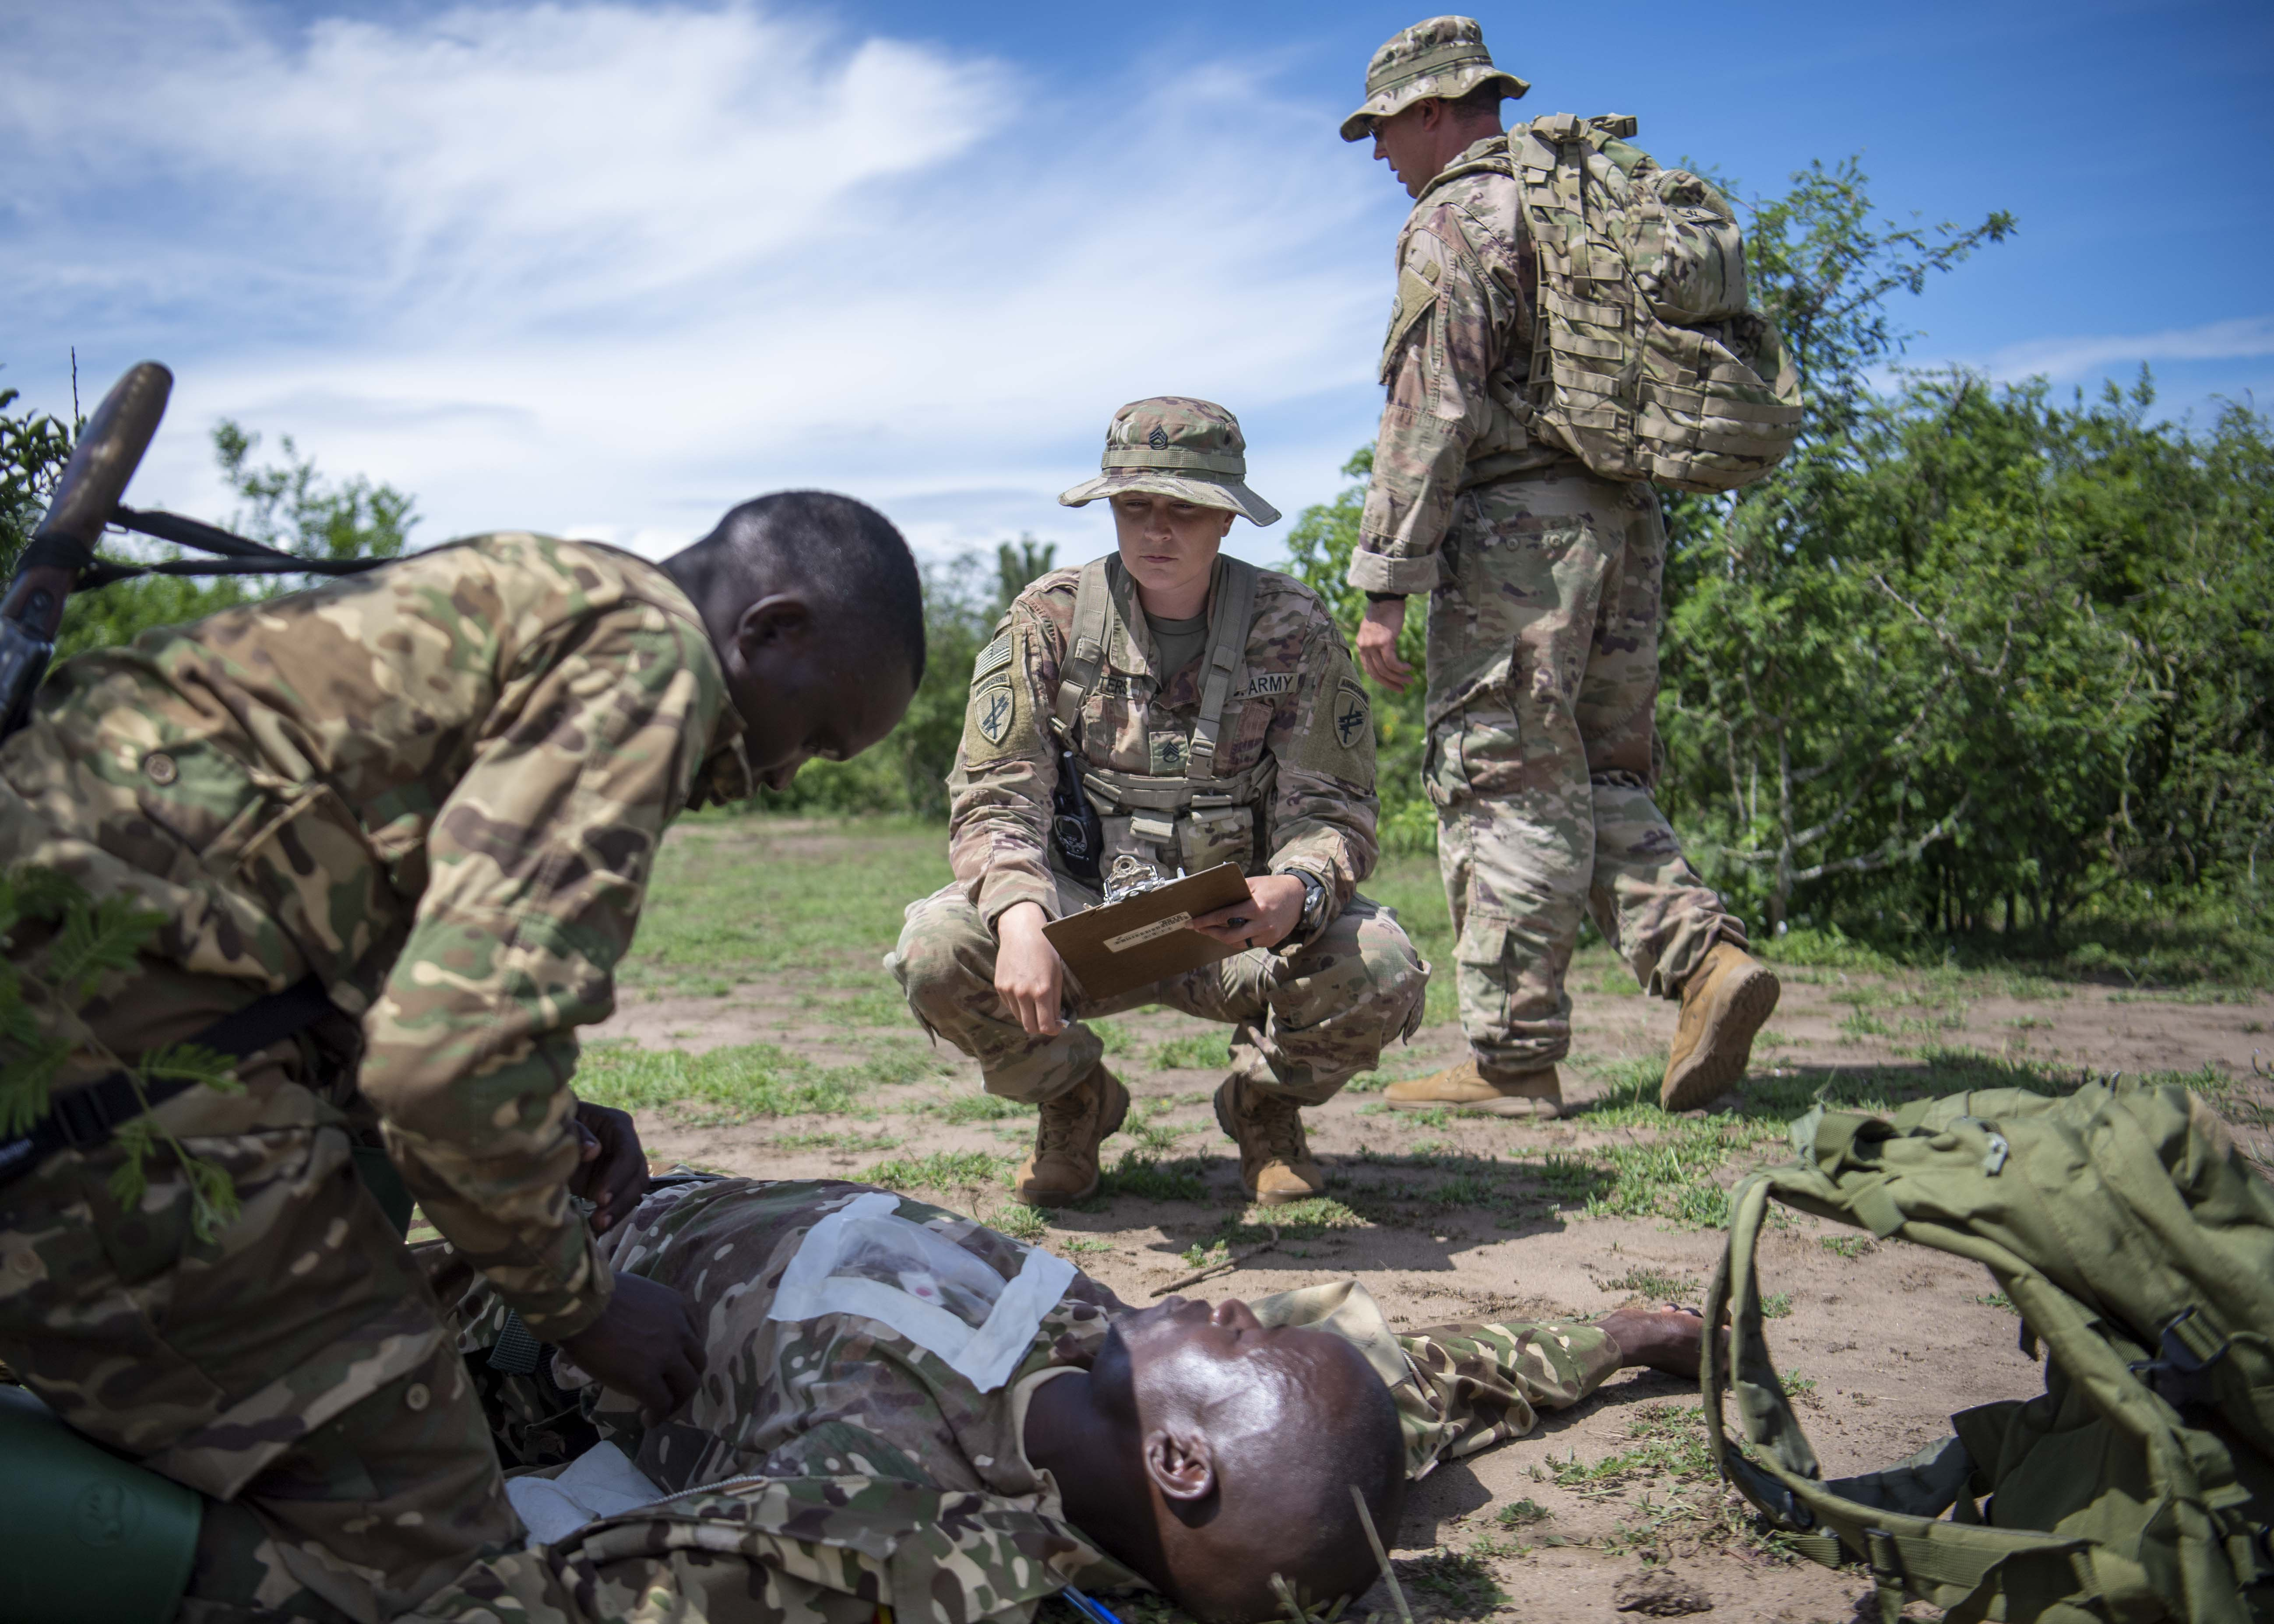 U.S. Army Staff Sgt. Elisha Waiters, instructor, 403rd Civil Affairs Battalion assigned to Combined Joint Task Force-Horn of Africa writes a team evaluation during a Counter Illicit Trafficking Junior Leadership Course examination at Queen Elizabeth Park, Uganda, Oct. 10, 2019. Waiters was one of six instructors who taught Uganda Wildlife Authority (UWA) Rangers how to conduct land navigation, conduct small unit tactics, respond to wildlife crimes, ethics and medically treat a casualty. (U.S. Air Force photo by Staff Sgt. J.D. Strong II)